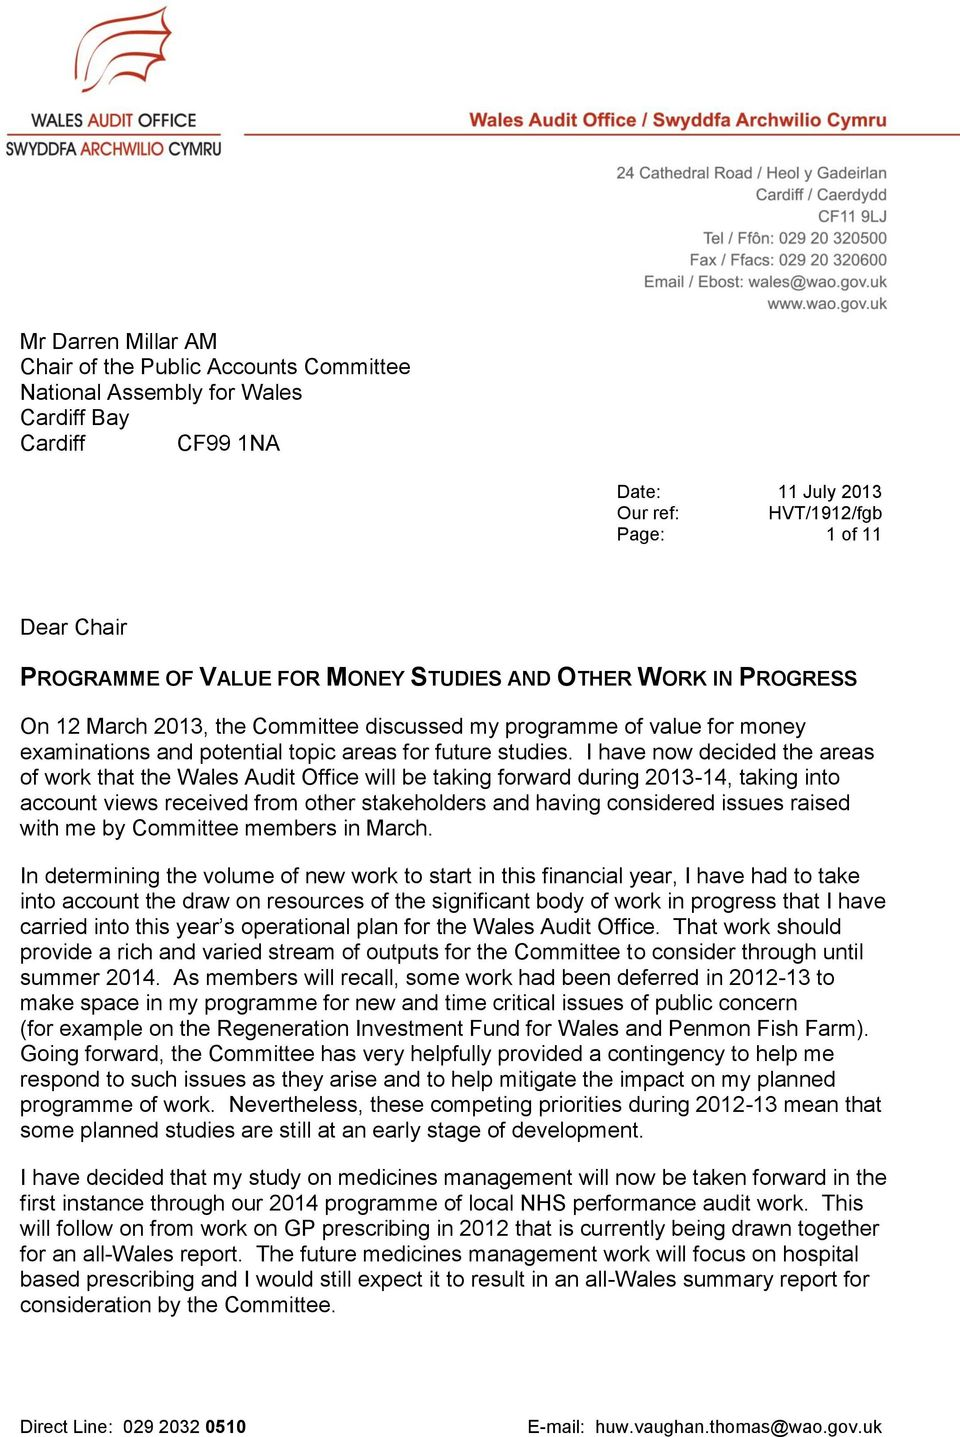 I have now decided the areas of work that the Wales Audit Office will be taking forward during 2013-14, taking into account views received from other stakeholders and having considered issues raised